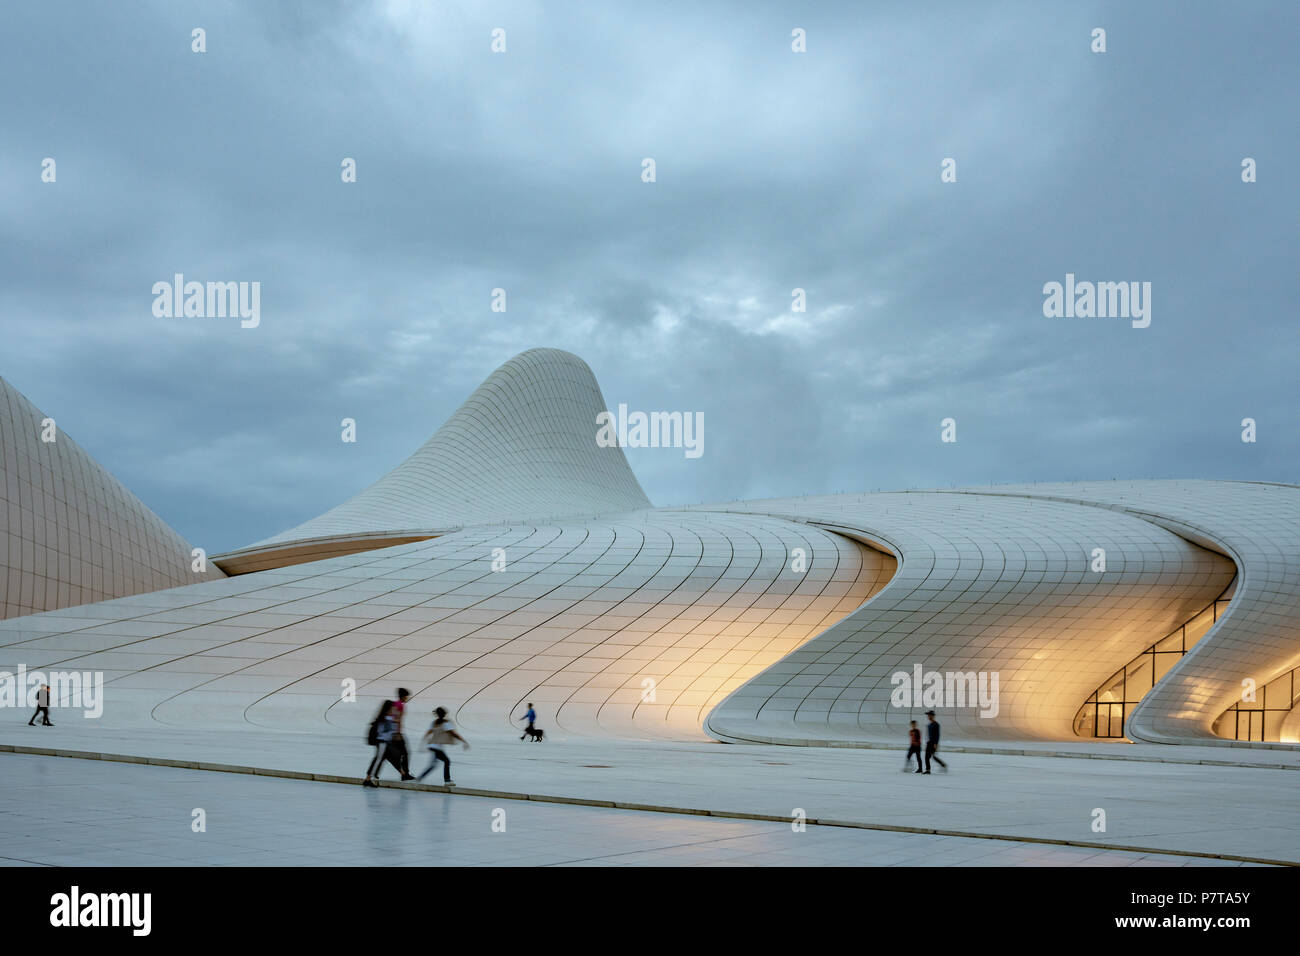 The Heydar Aliyev Center at late afternoon in Baku,Azerbaijan - Stock Image